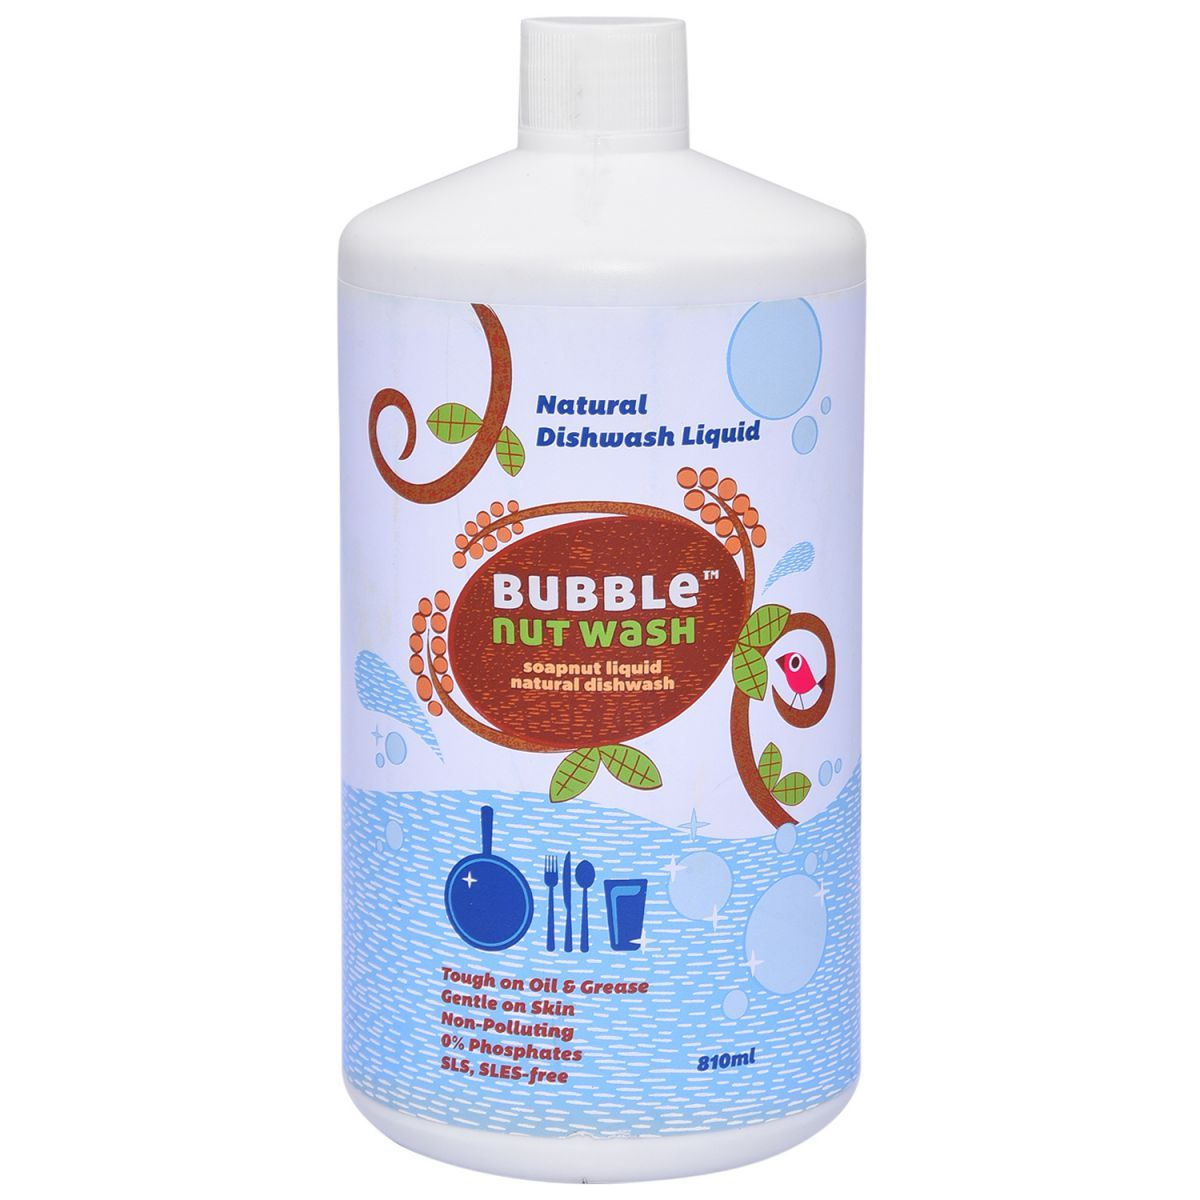 Natural Dishwash Liquid (810ml)